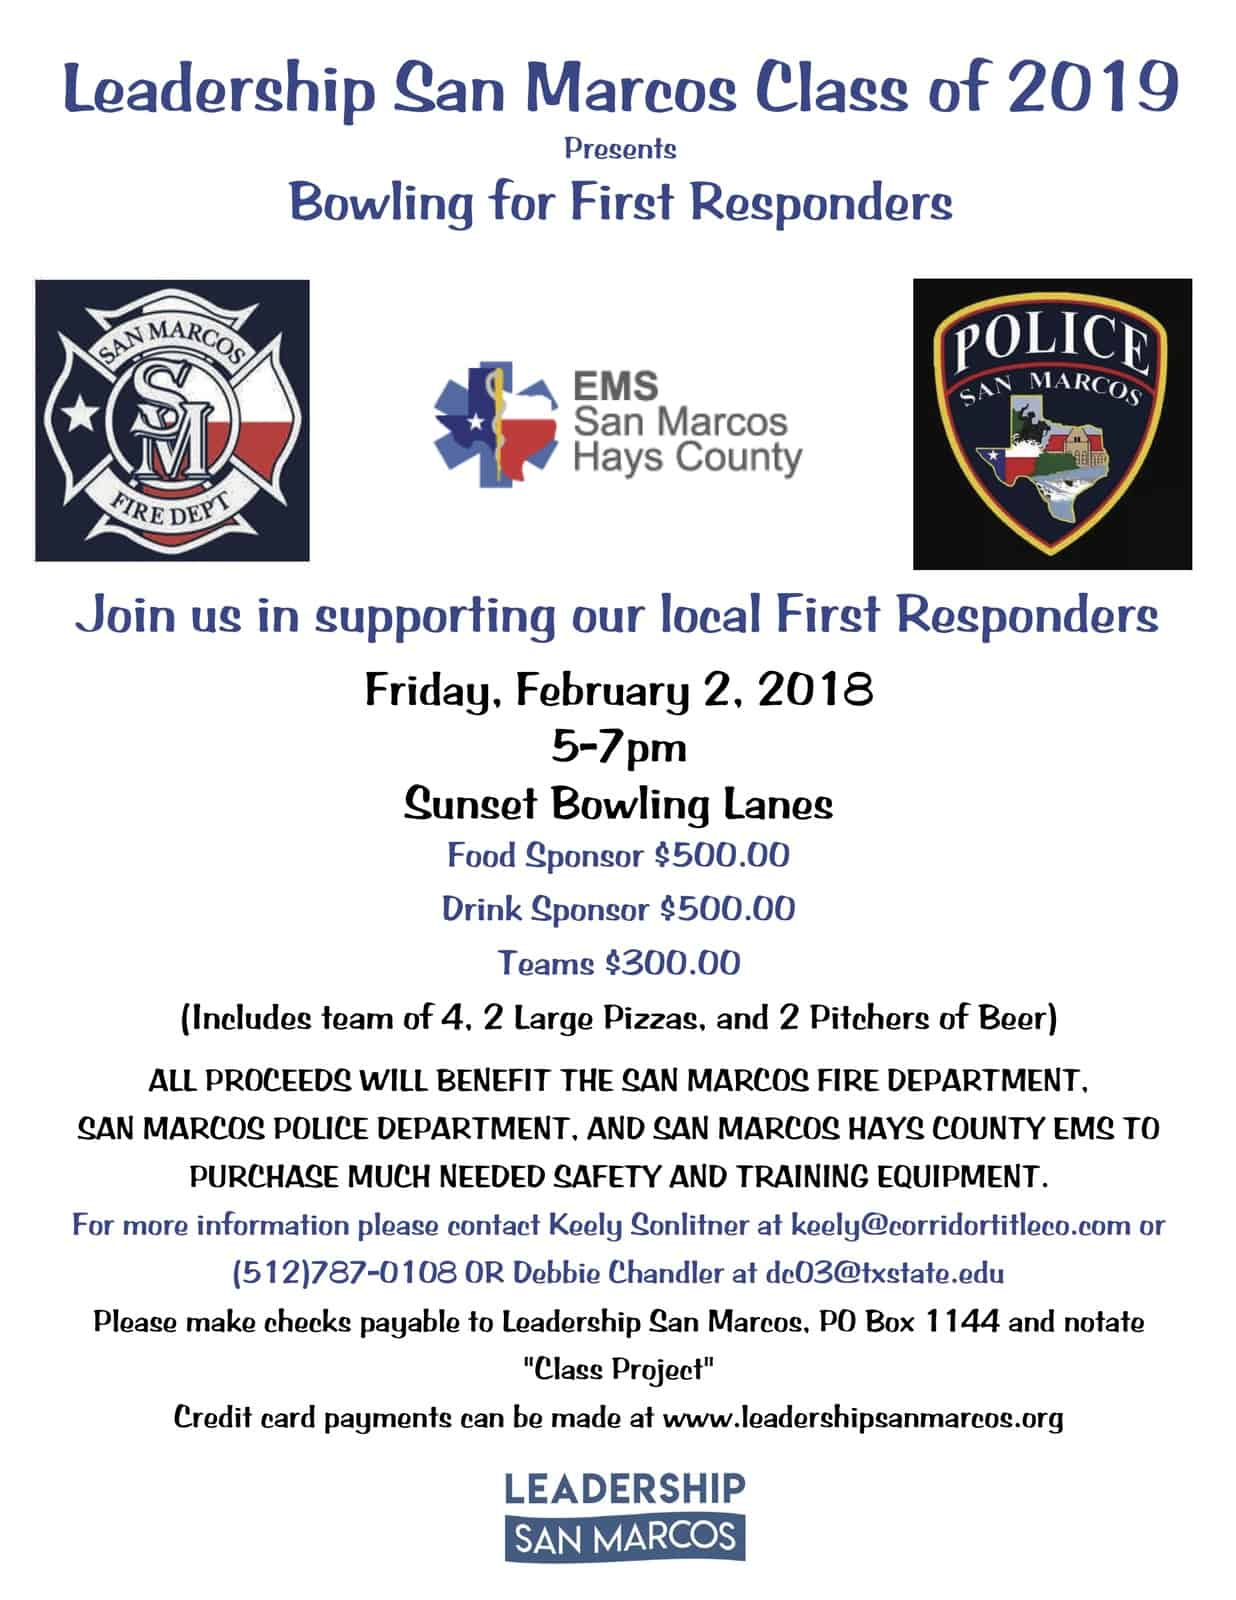 Bowling for First Responders